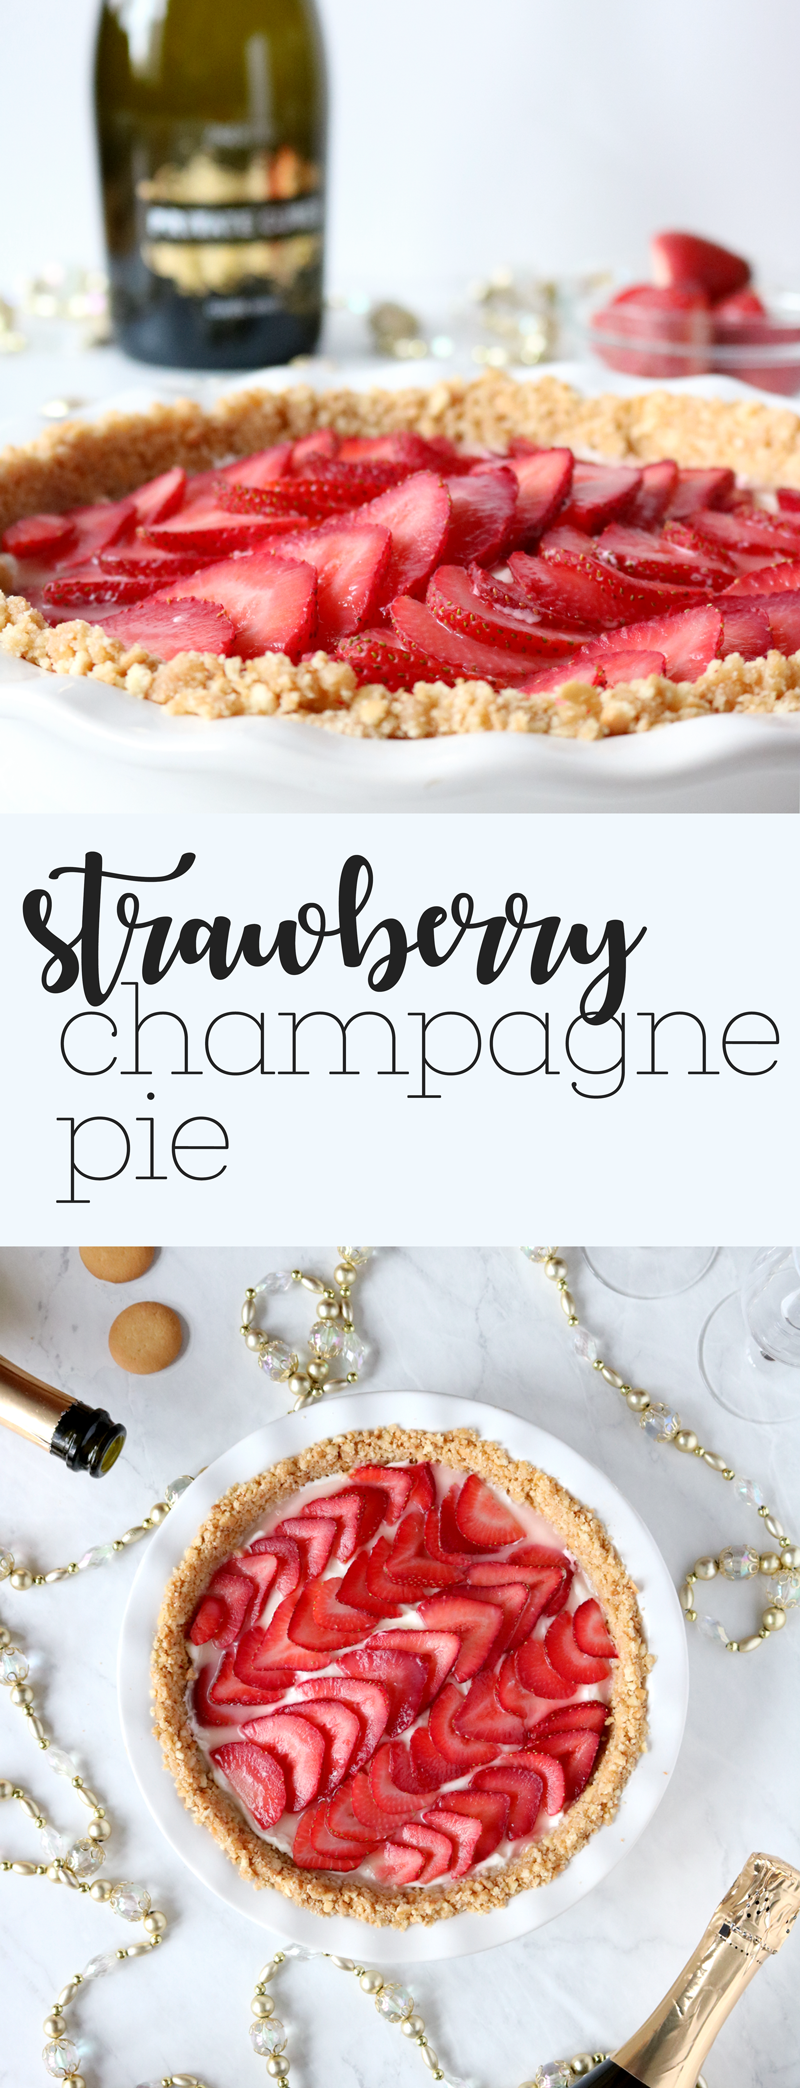 Champagne-New-Year-Pie-Recipe via Pies Before Guys